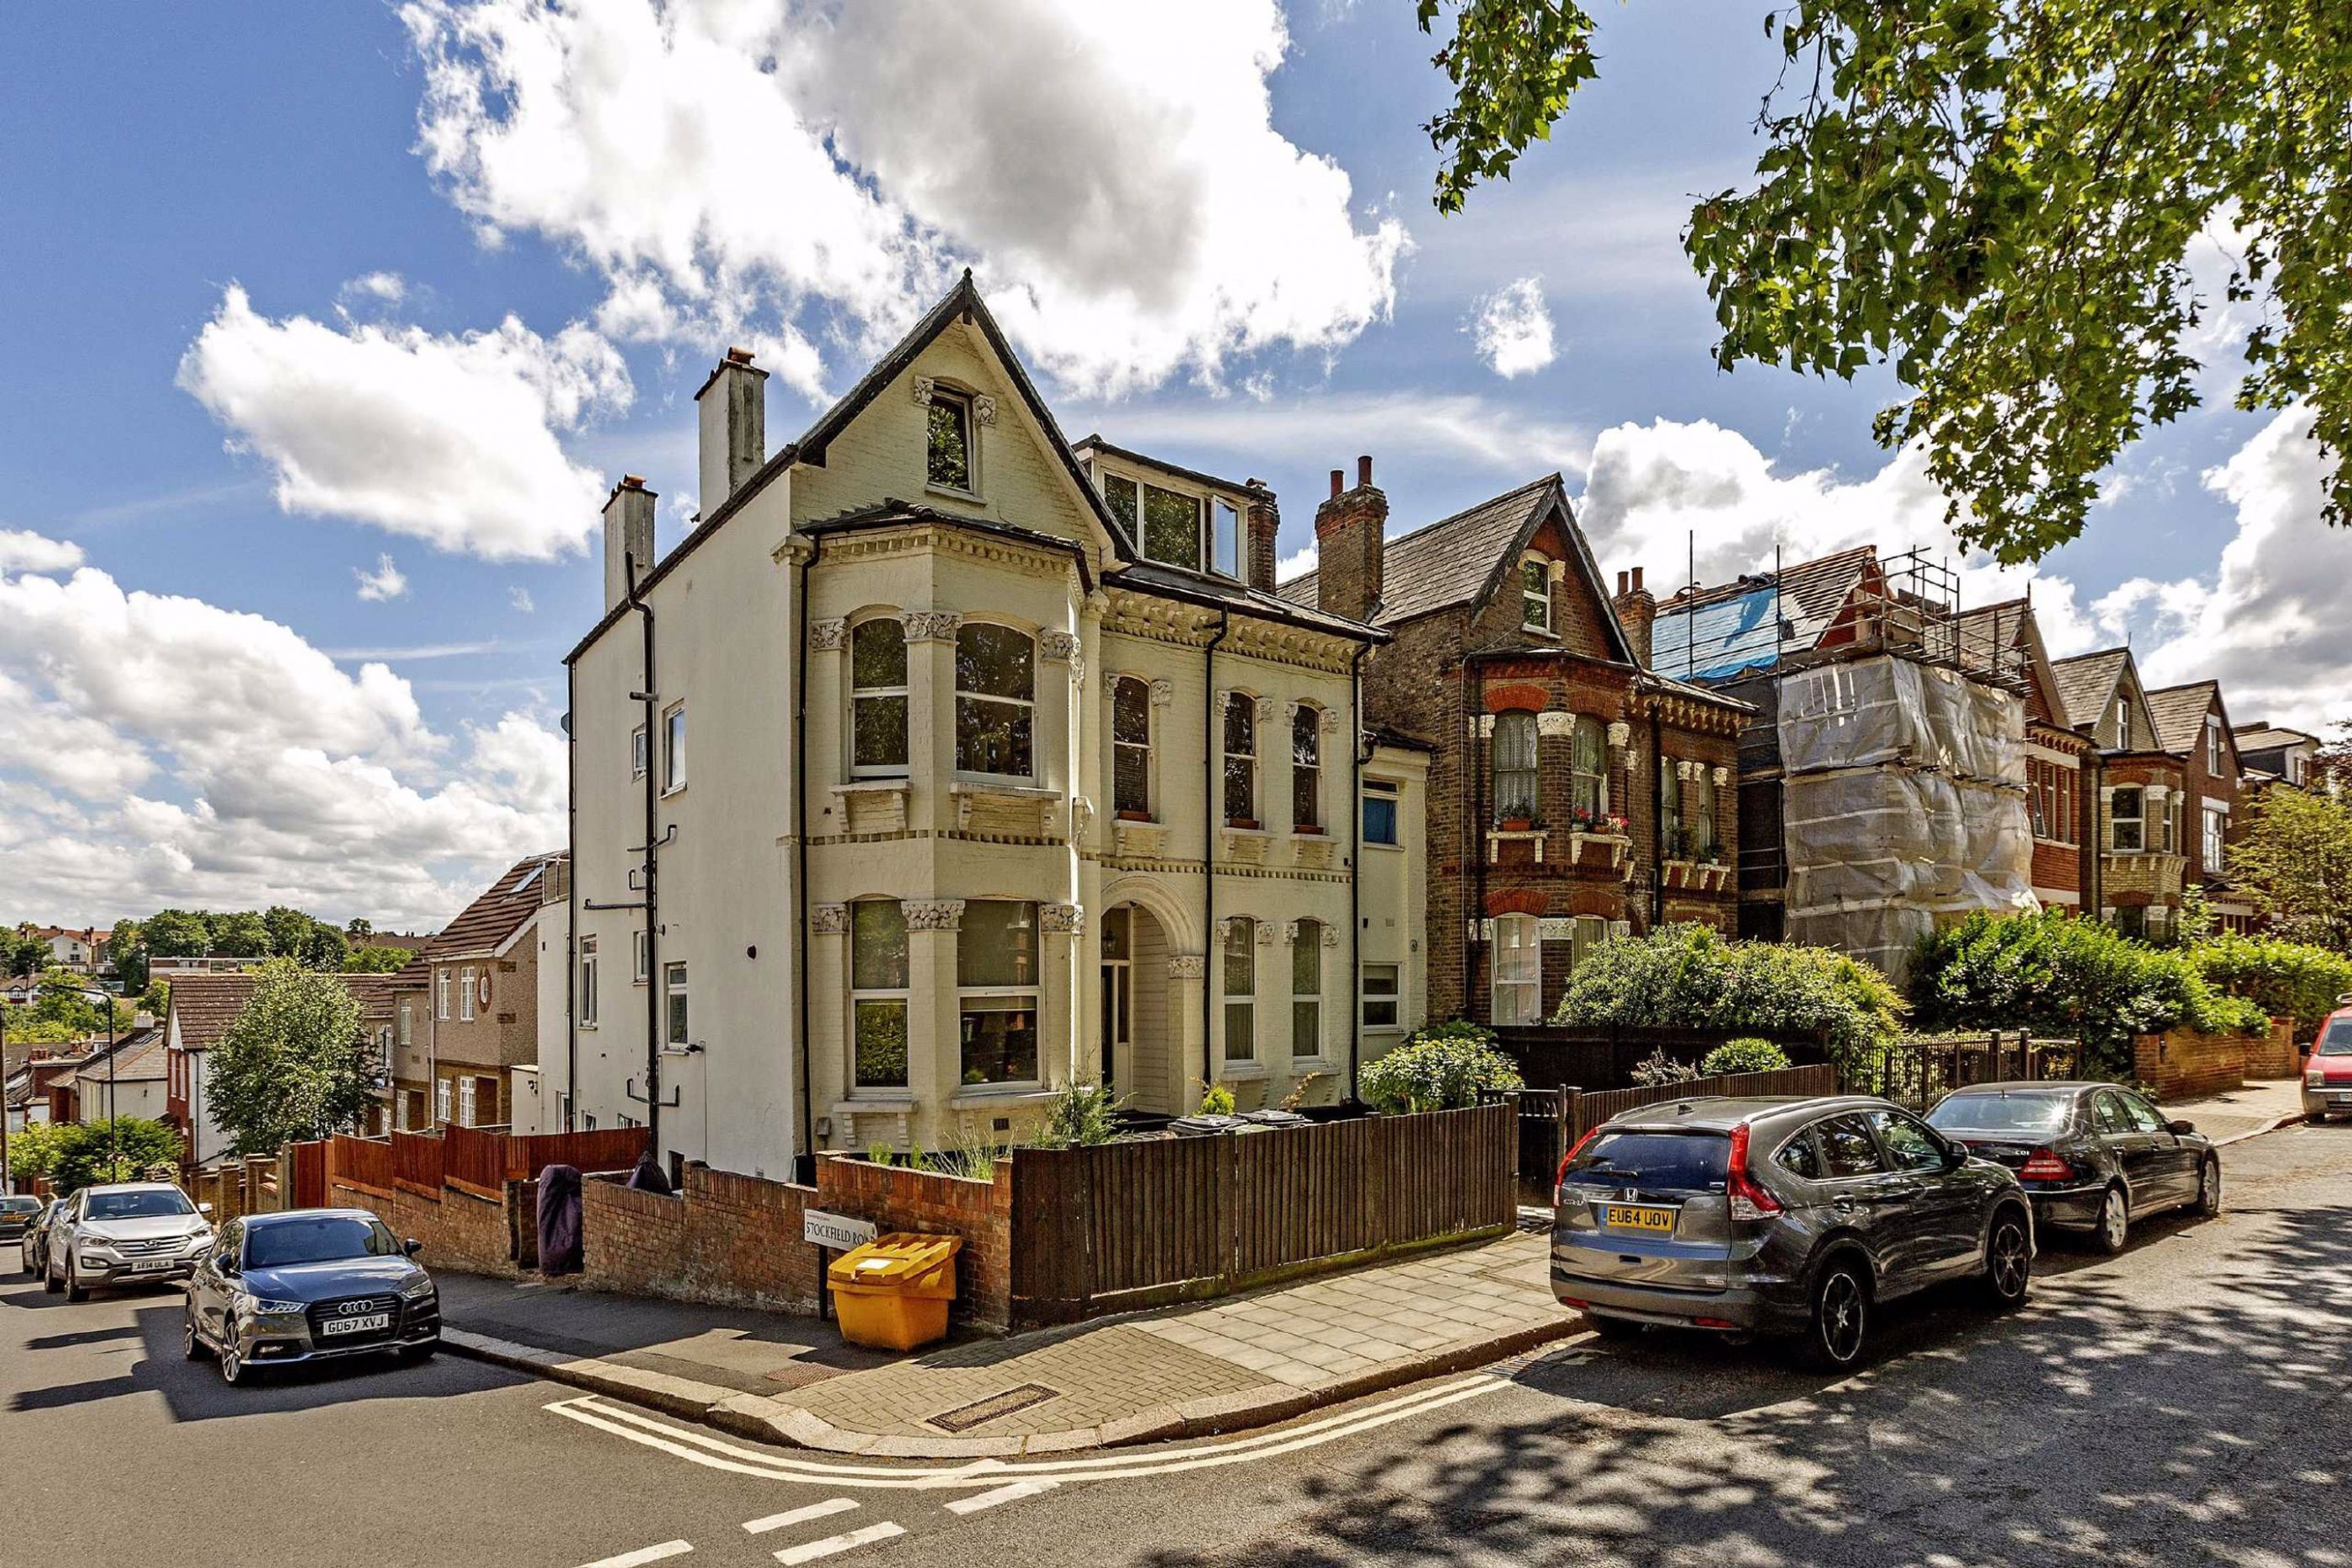 Images for Mount Nod Road, Streatham, London EAID:aspireapi BID:1